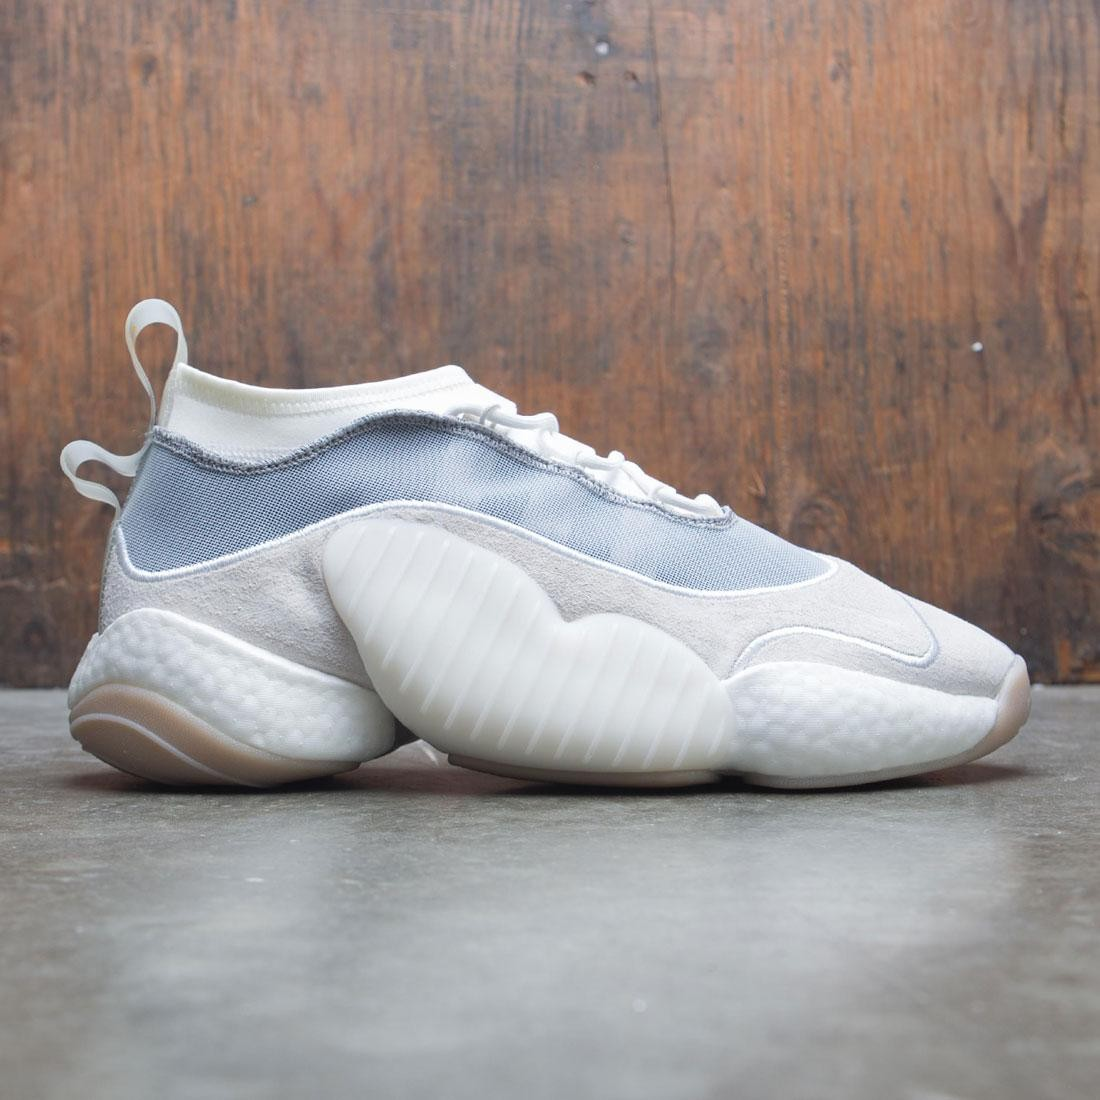 f110dd73b34 Adidas x Bristol Studio Men Crazy BYW LVL II white cloud white collegiate  navy